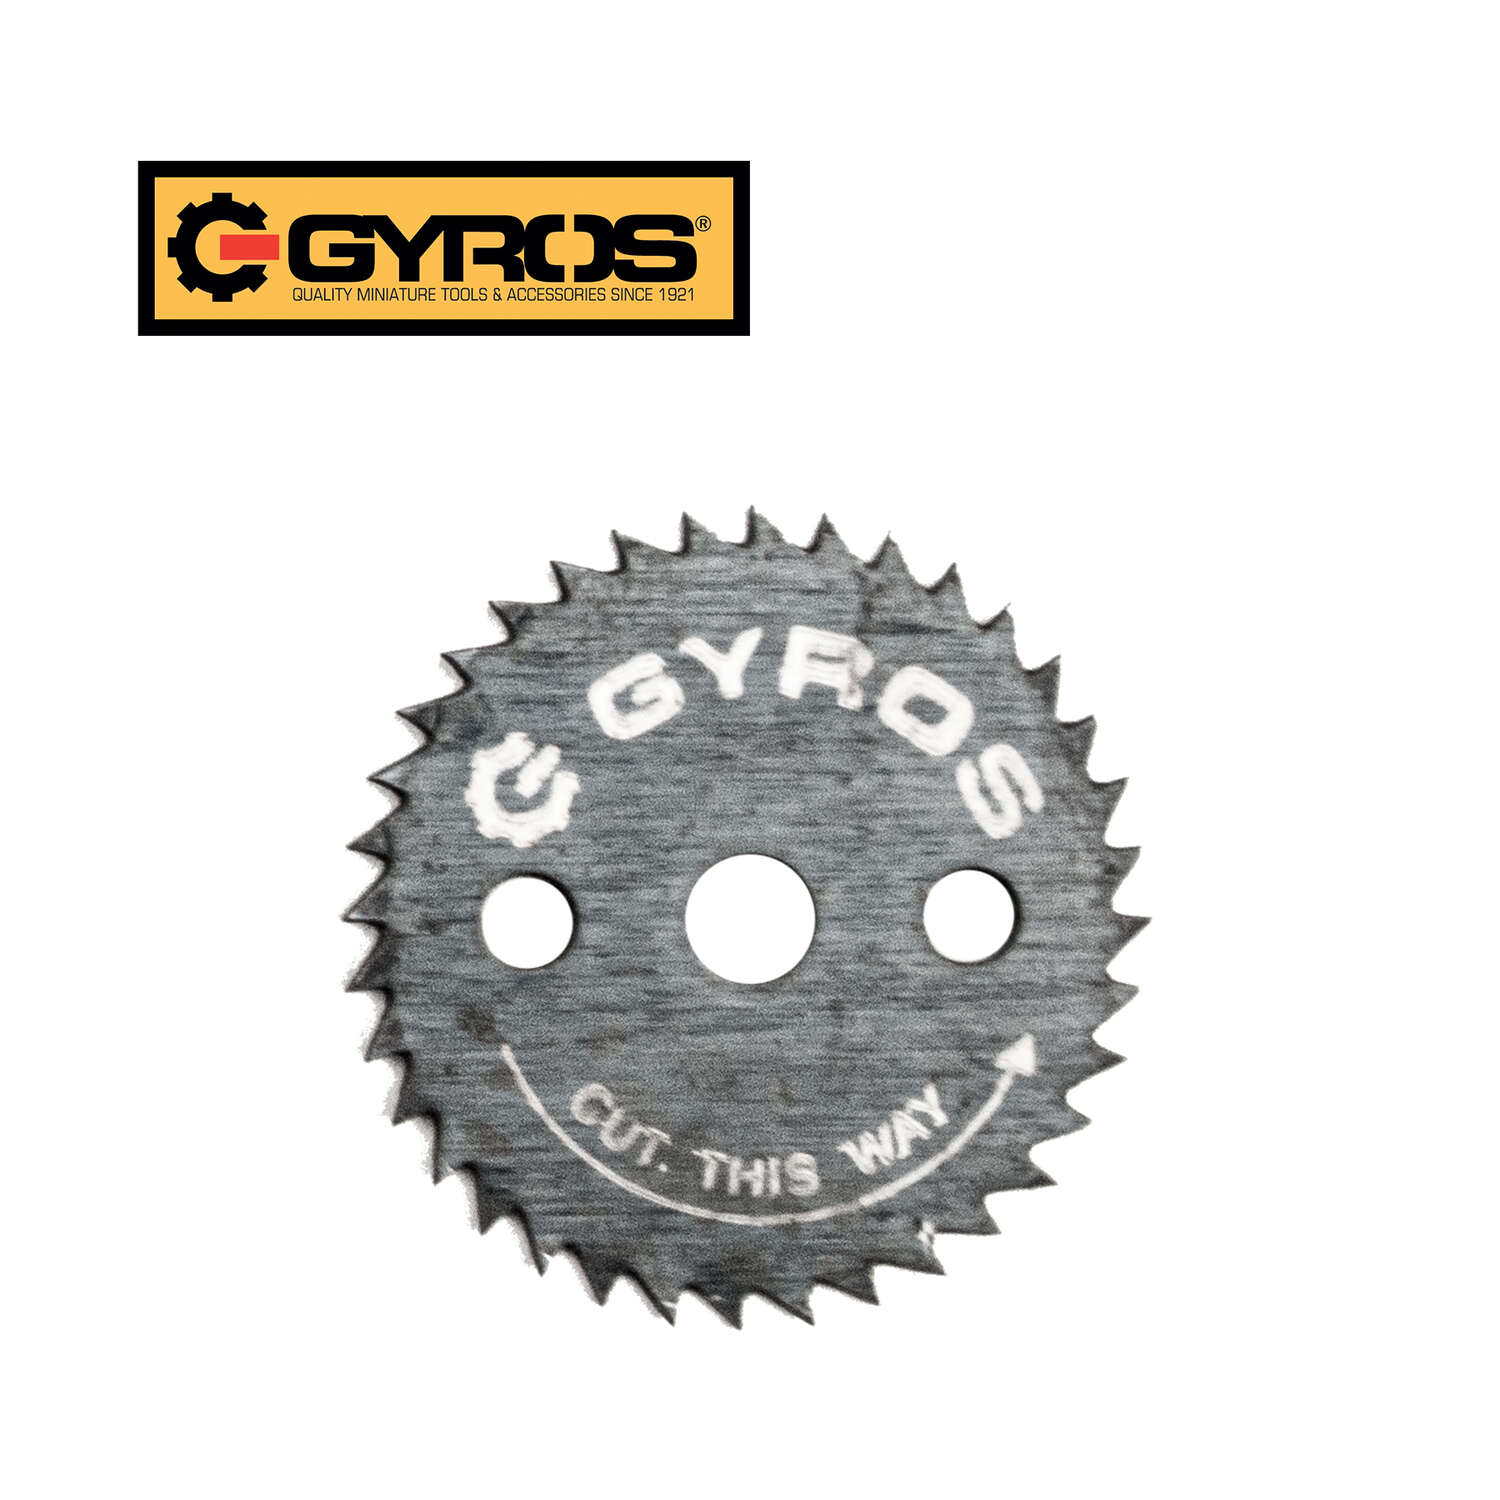 Gyros Tools  7/8 in.  Steel  Circular Power Saw Blades  Ripsaw Blade  1/8 in.  36 teeth 1 pk 0.021 i